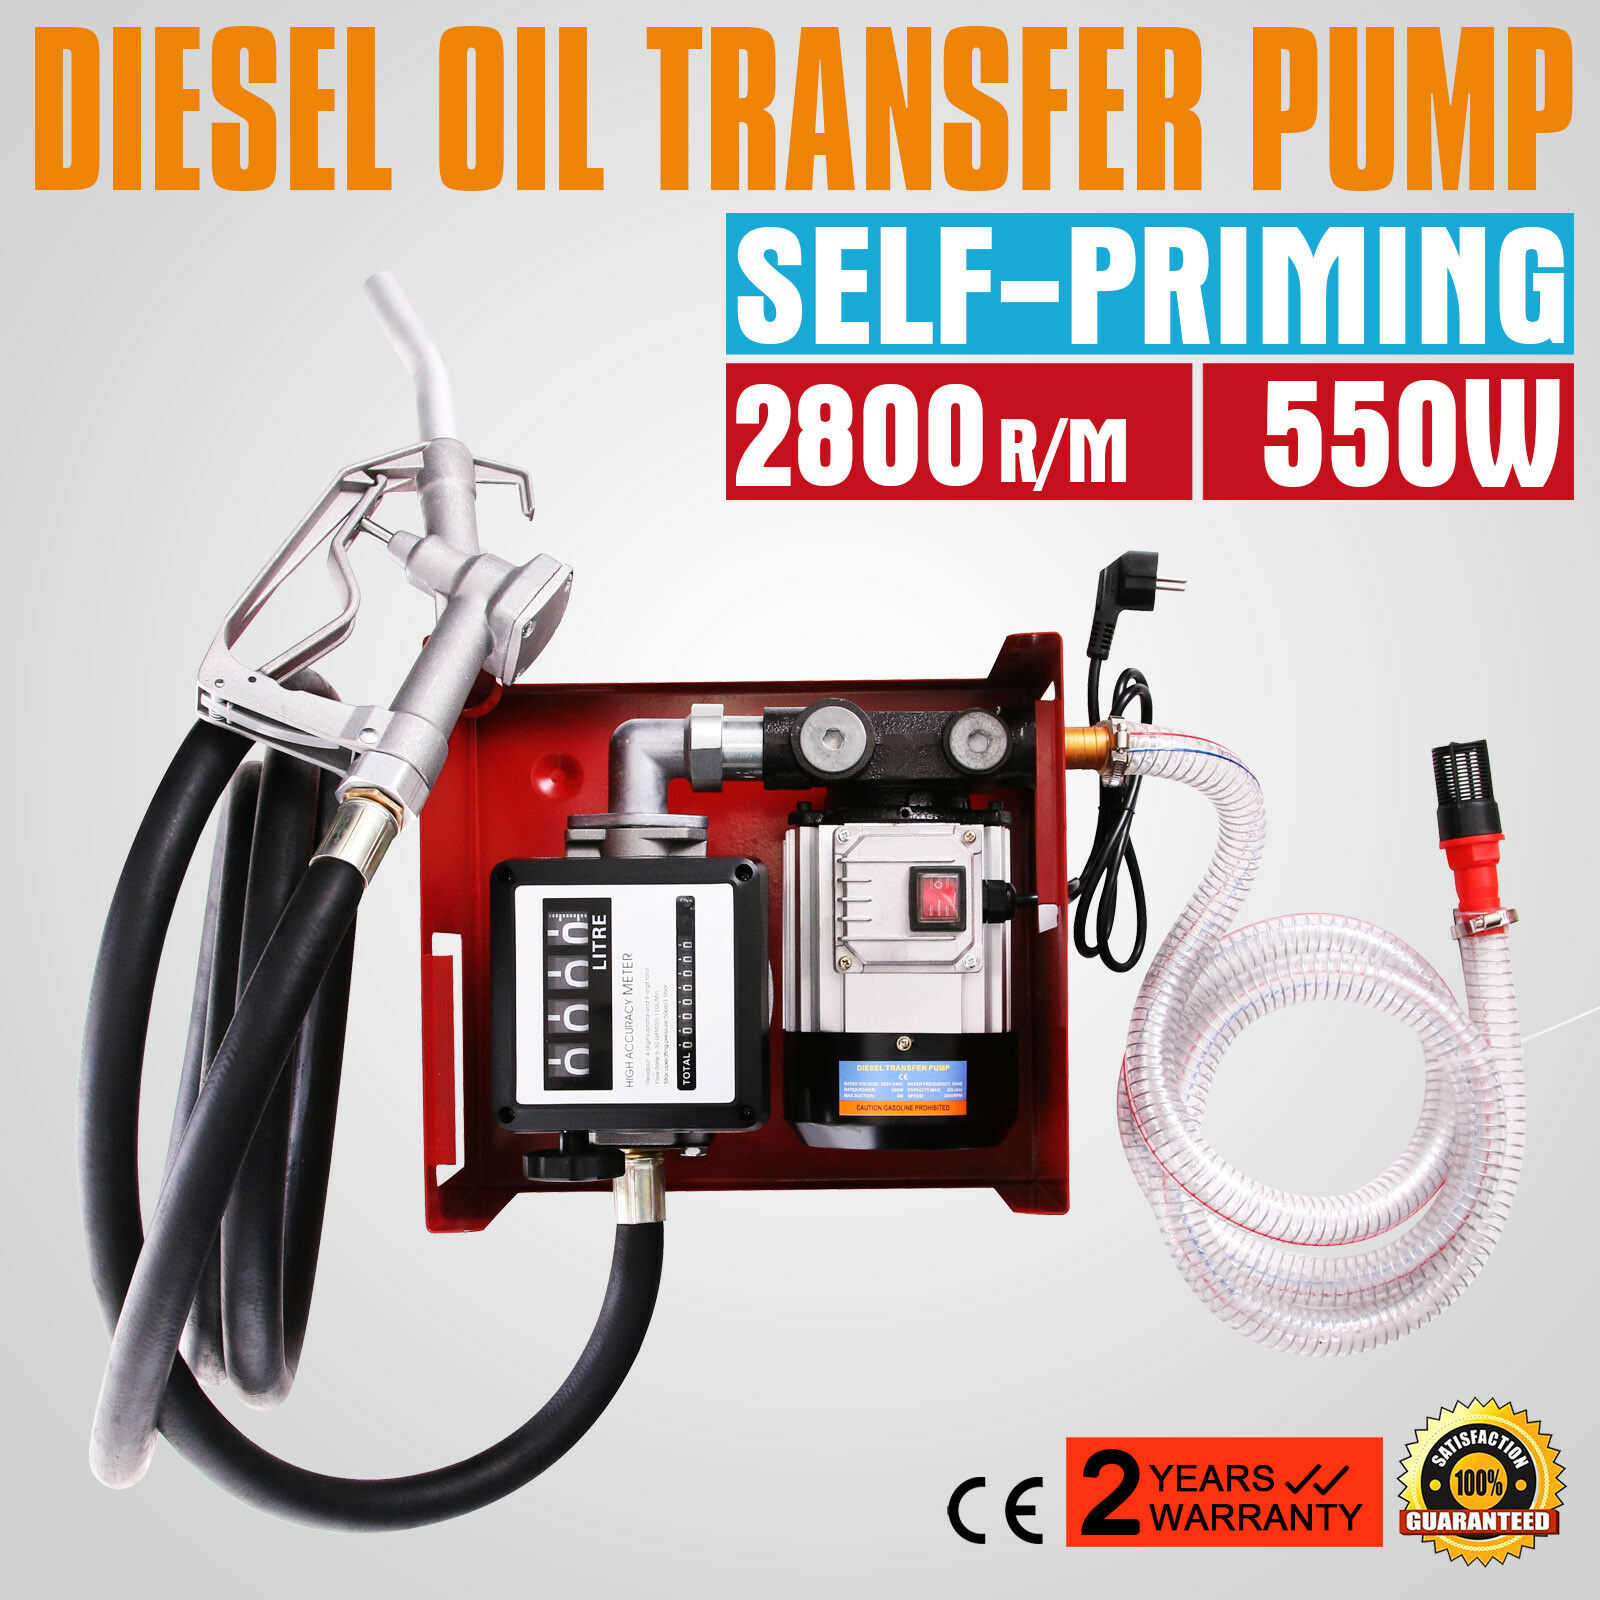 12V Electric Fuel Self-Priming Transfer Pump Bio Oil Pump Fuel Transfer Pump